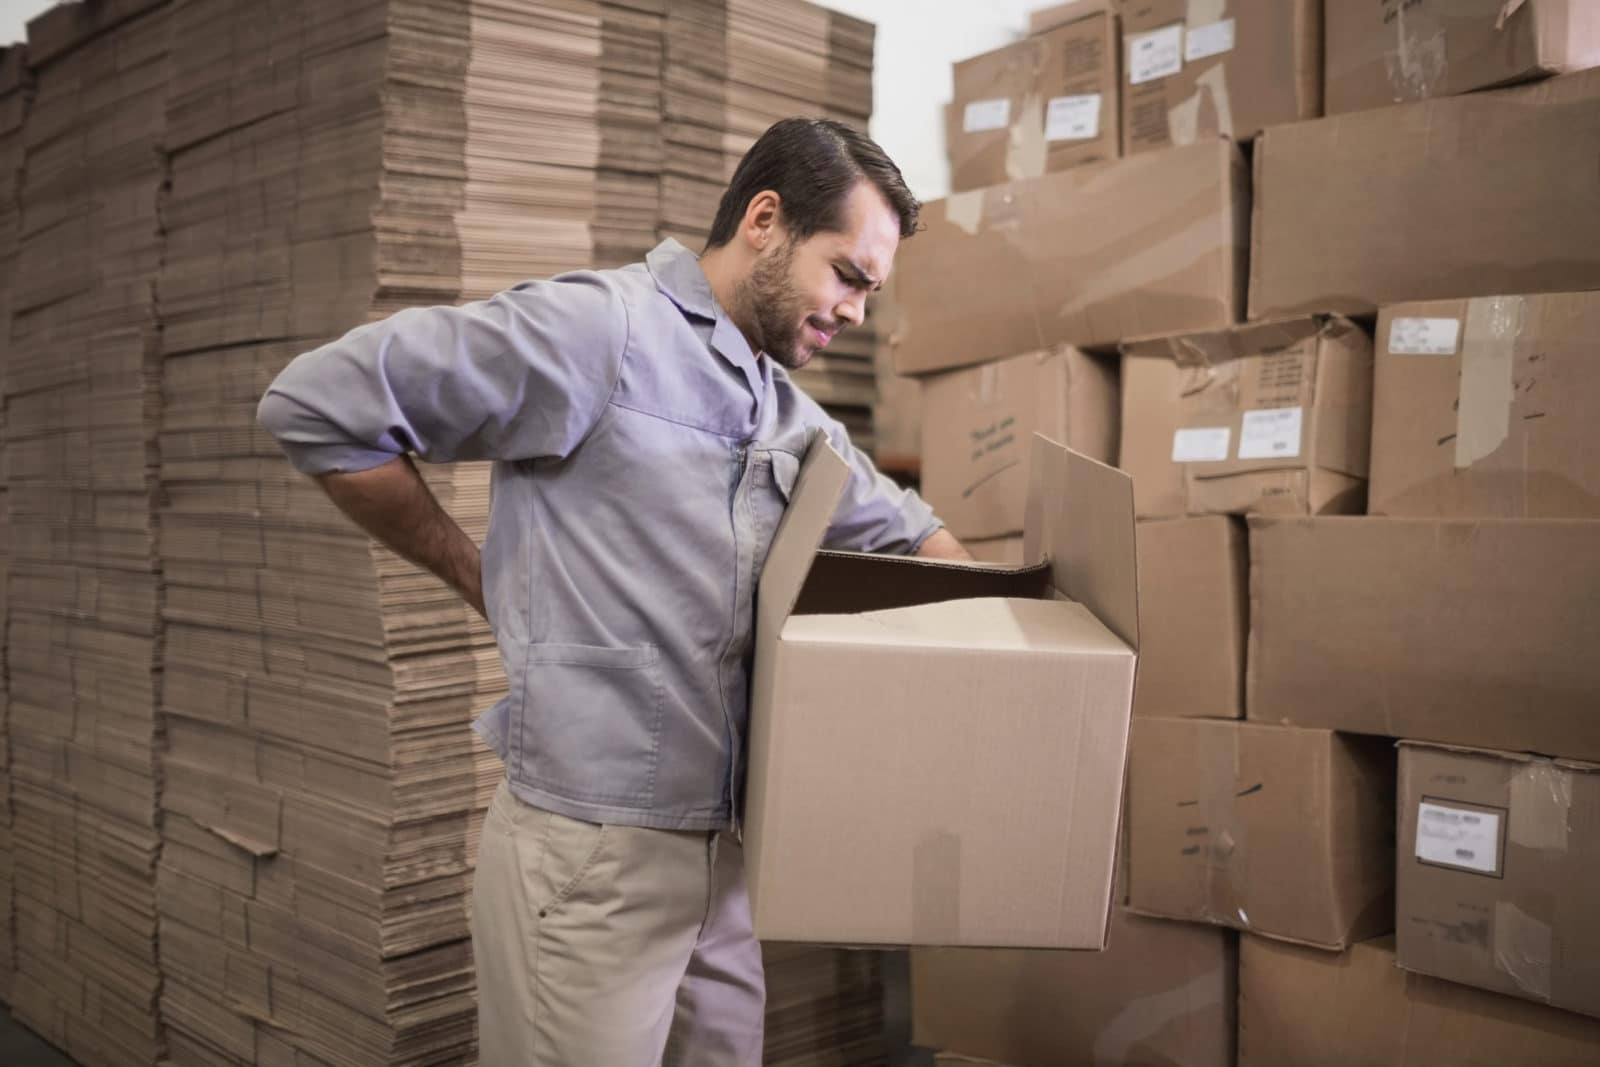 a worker who frequently carries heavy boxes is experiencing back pain